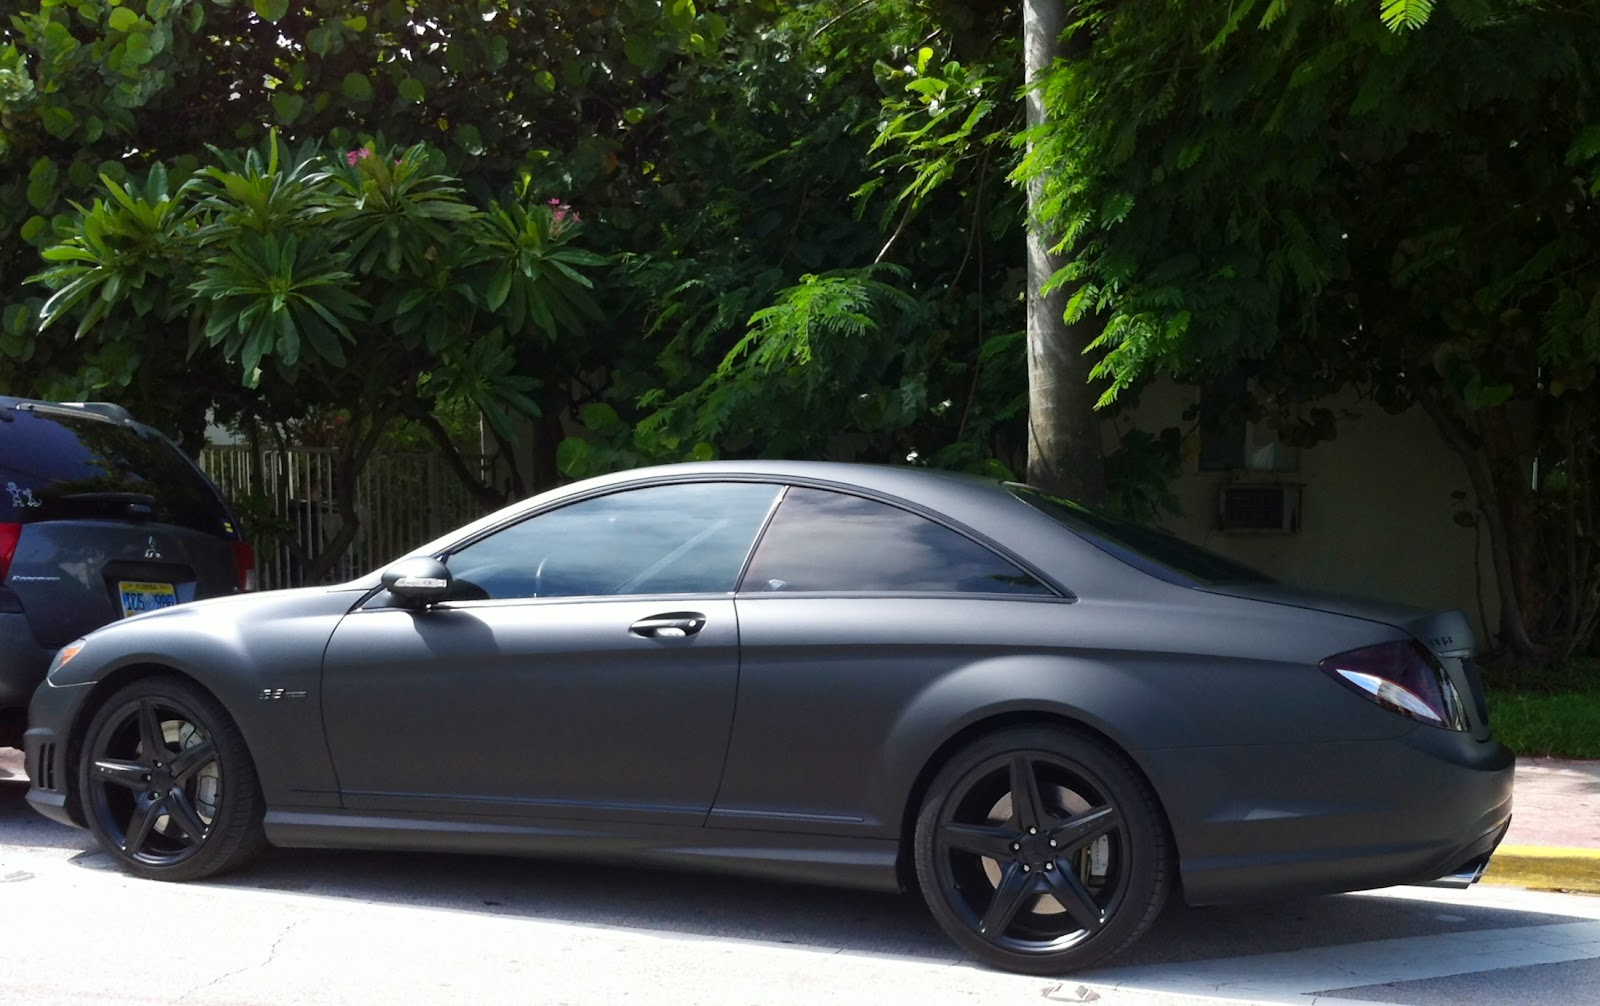 matte black mercedes cl 63 with black rims exotic cars on the streets of miami. Black Bedroom Furniture Sets. Home Design Ideas